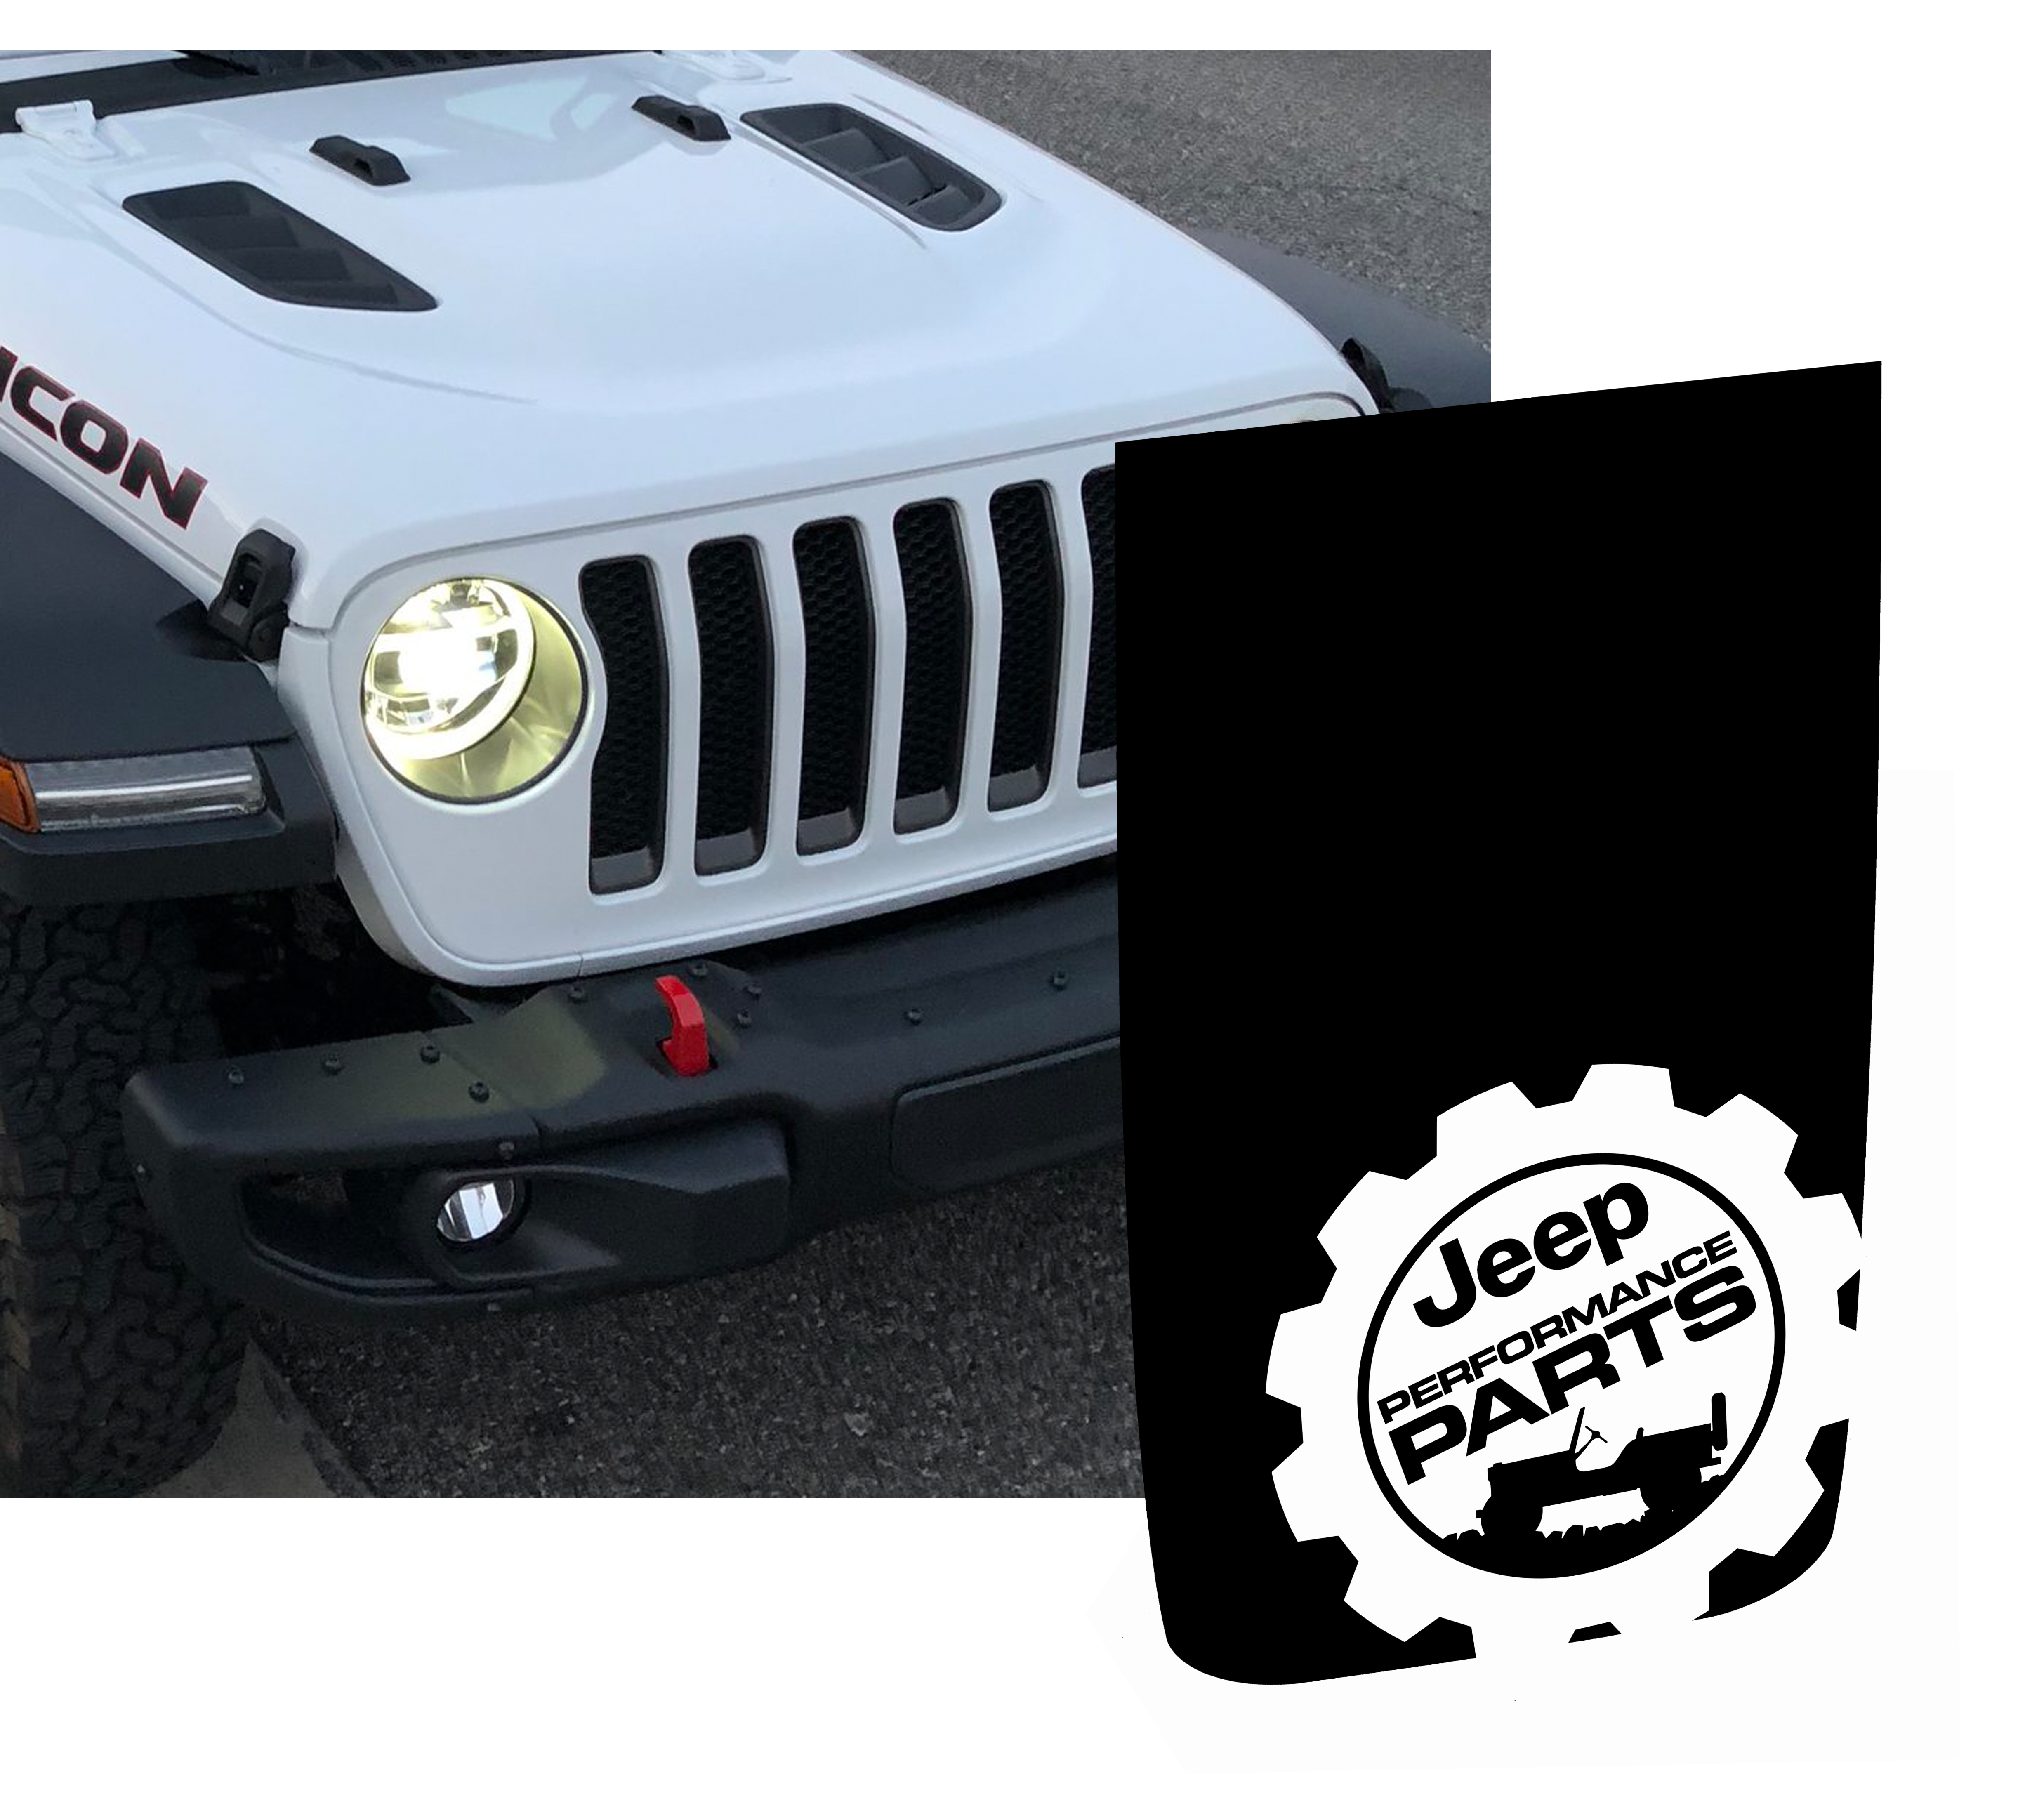 Jeep Wrangler Gladiator Rubicon Style Jeep Performance Parts Hood Blackout Decal fits 2018+ models